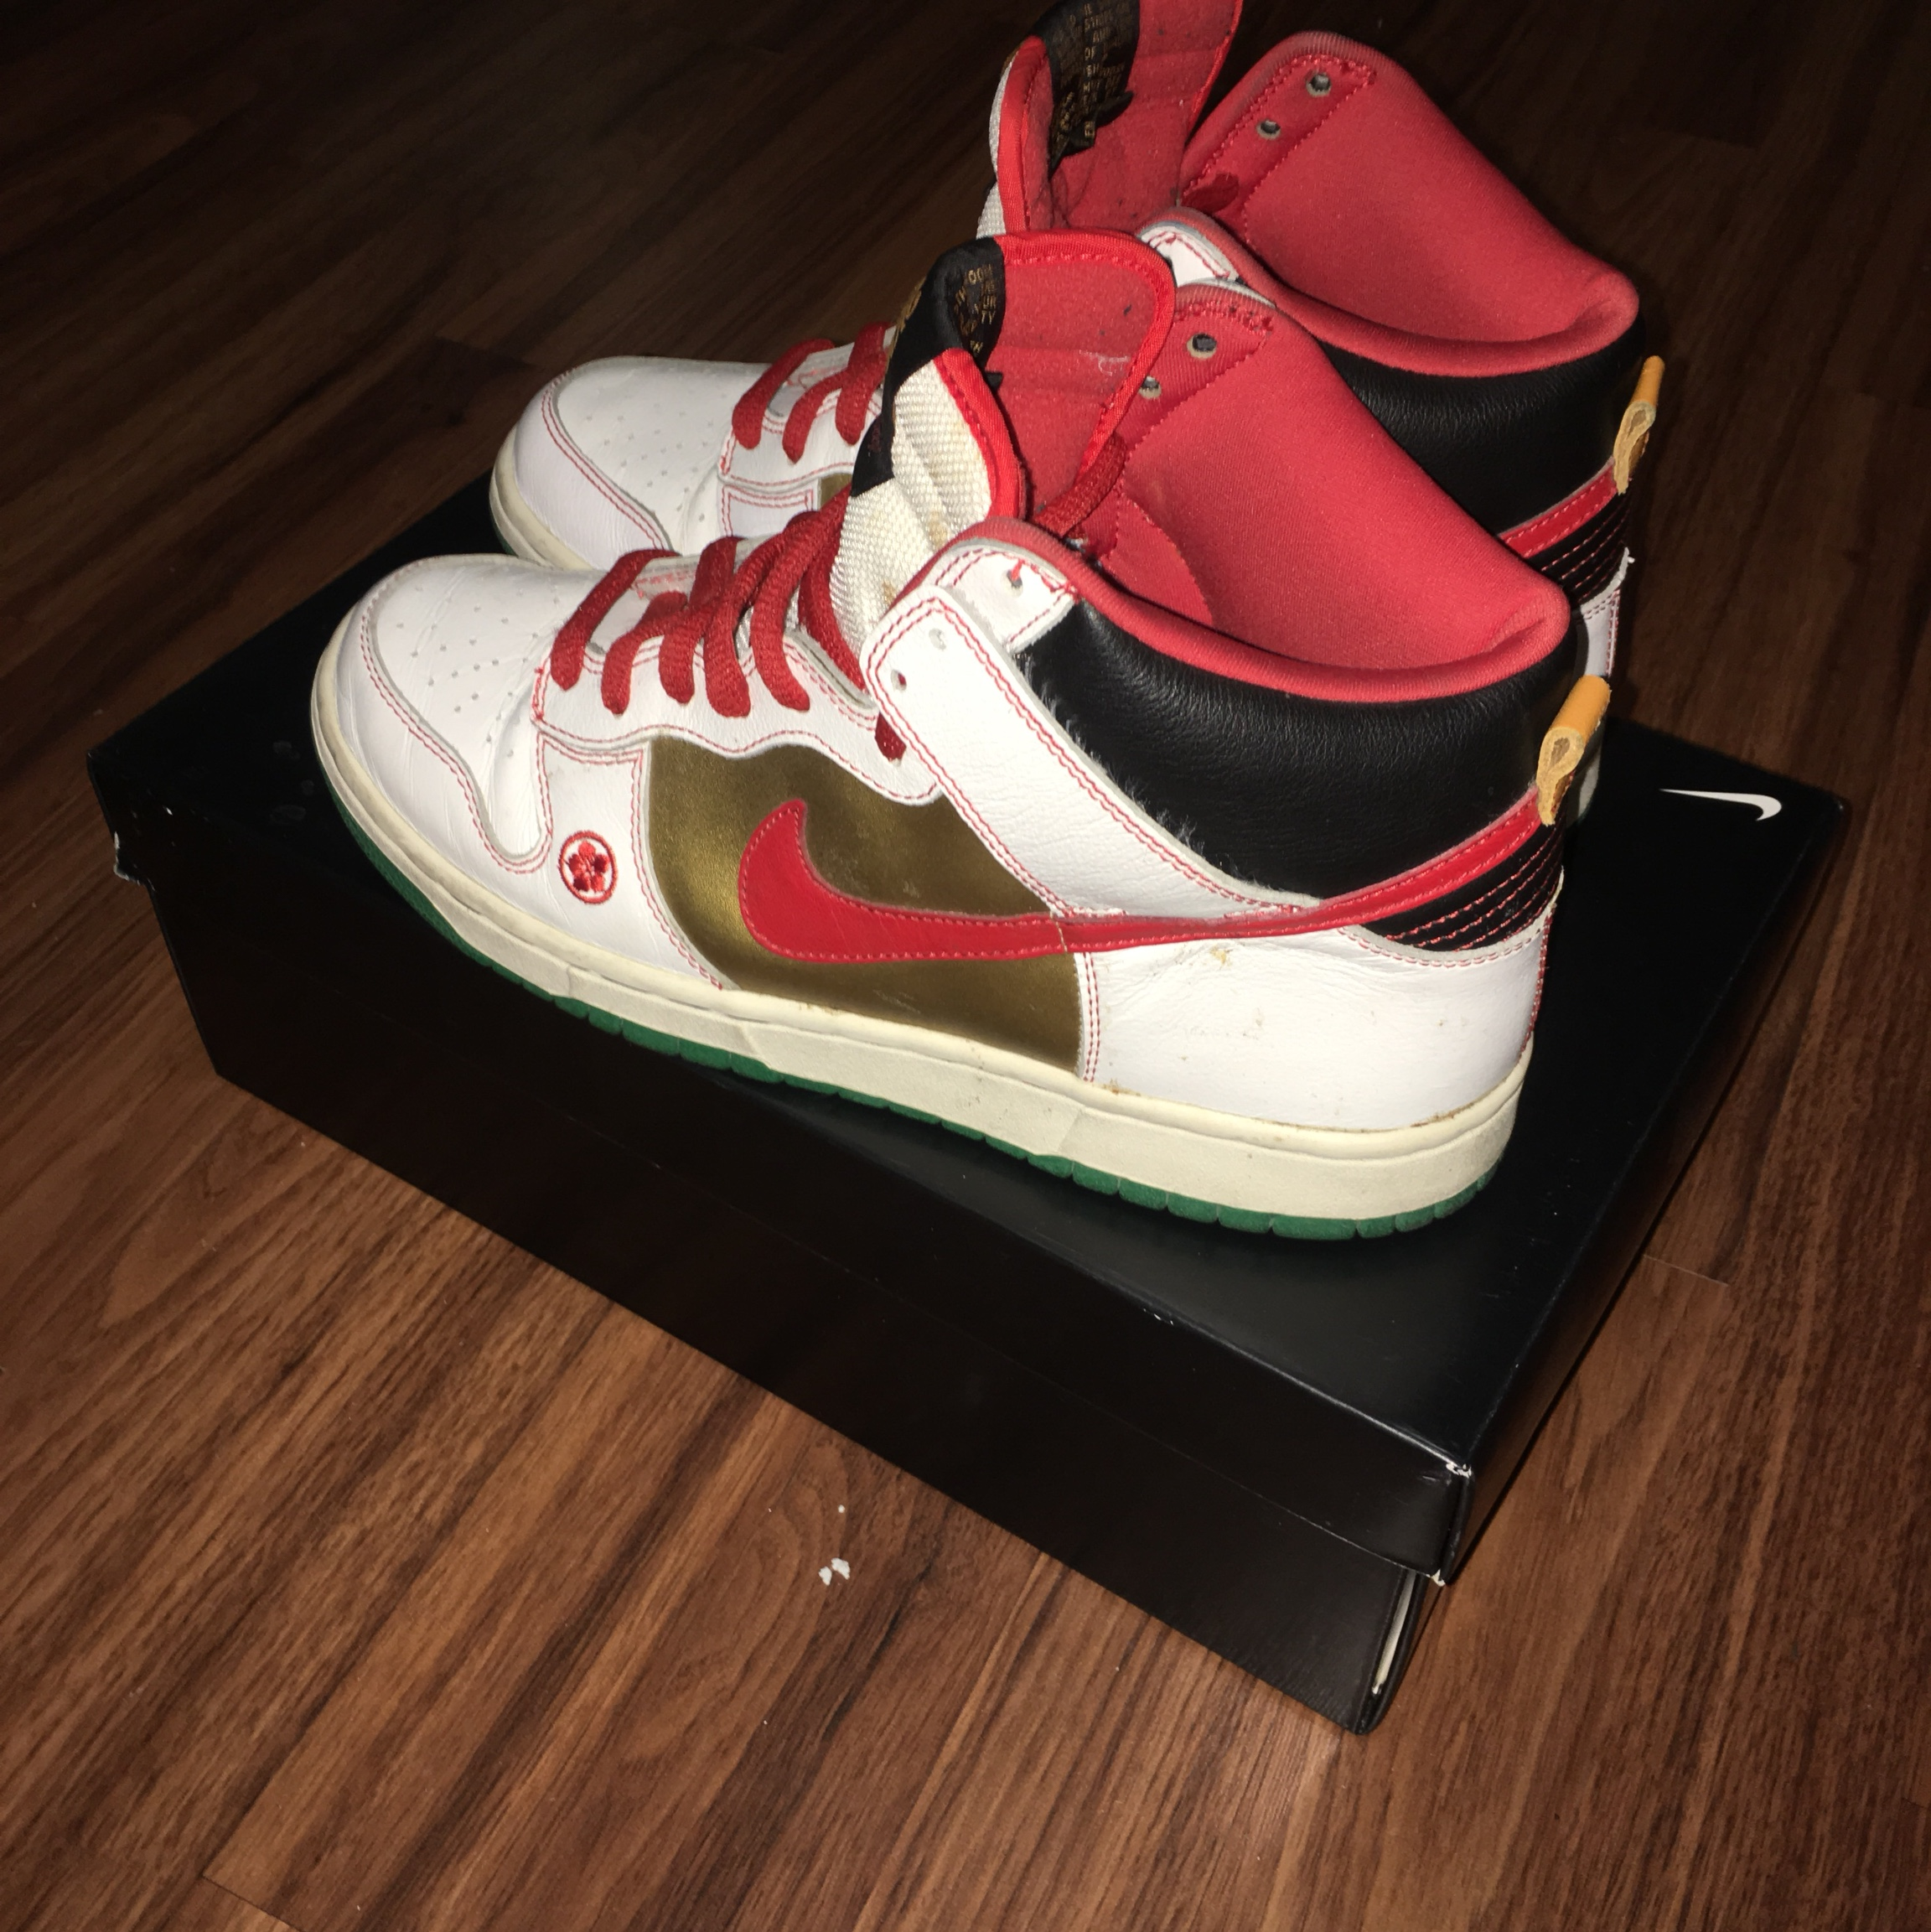 los angeles b24a7 a8170 Nike Sb Dunk Money Cat High Condition: 7/10 Size:... - Depop